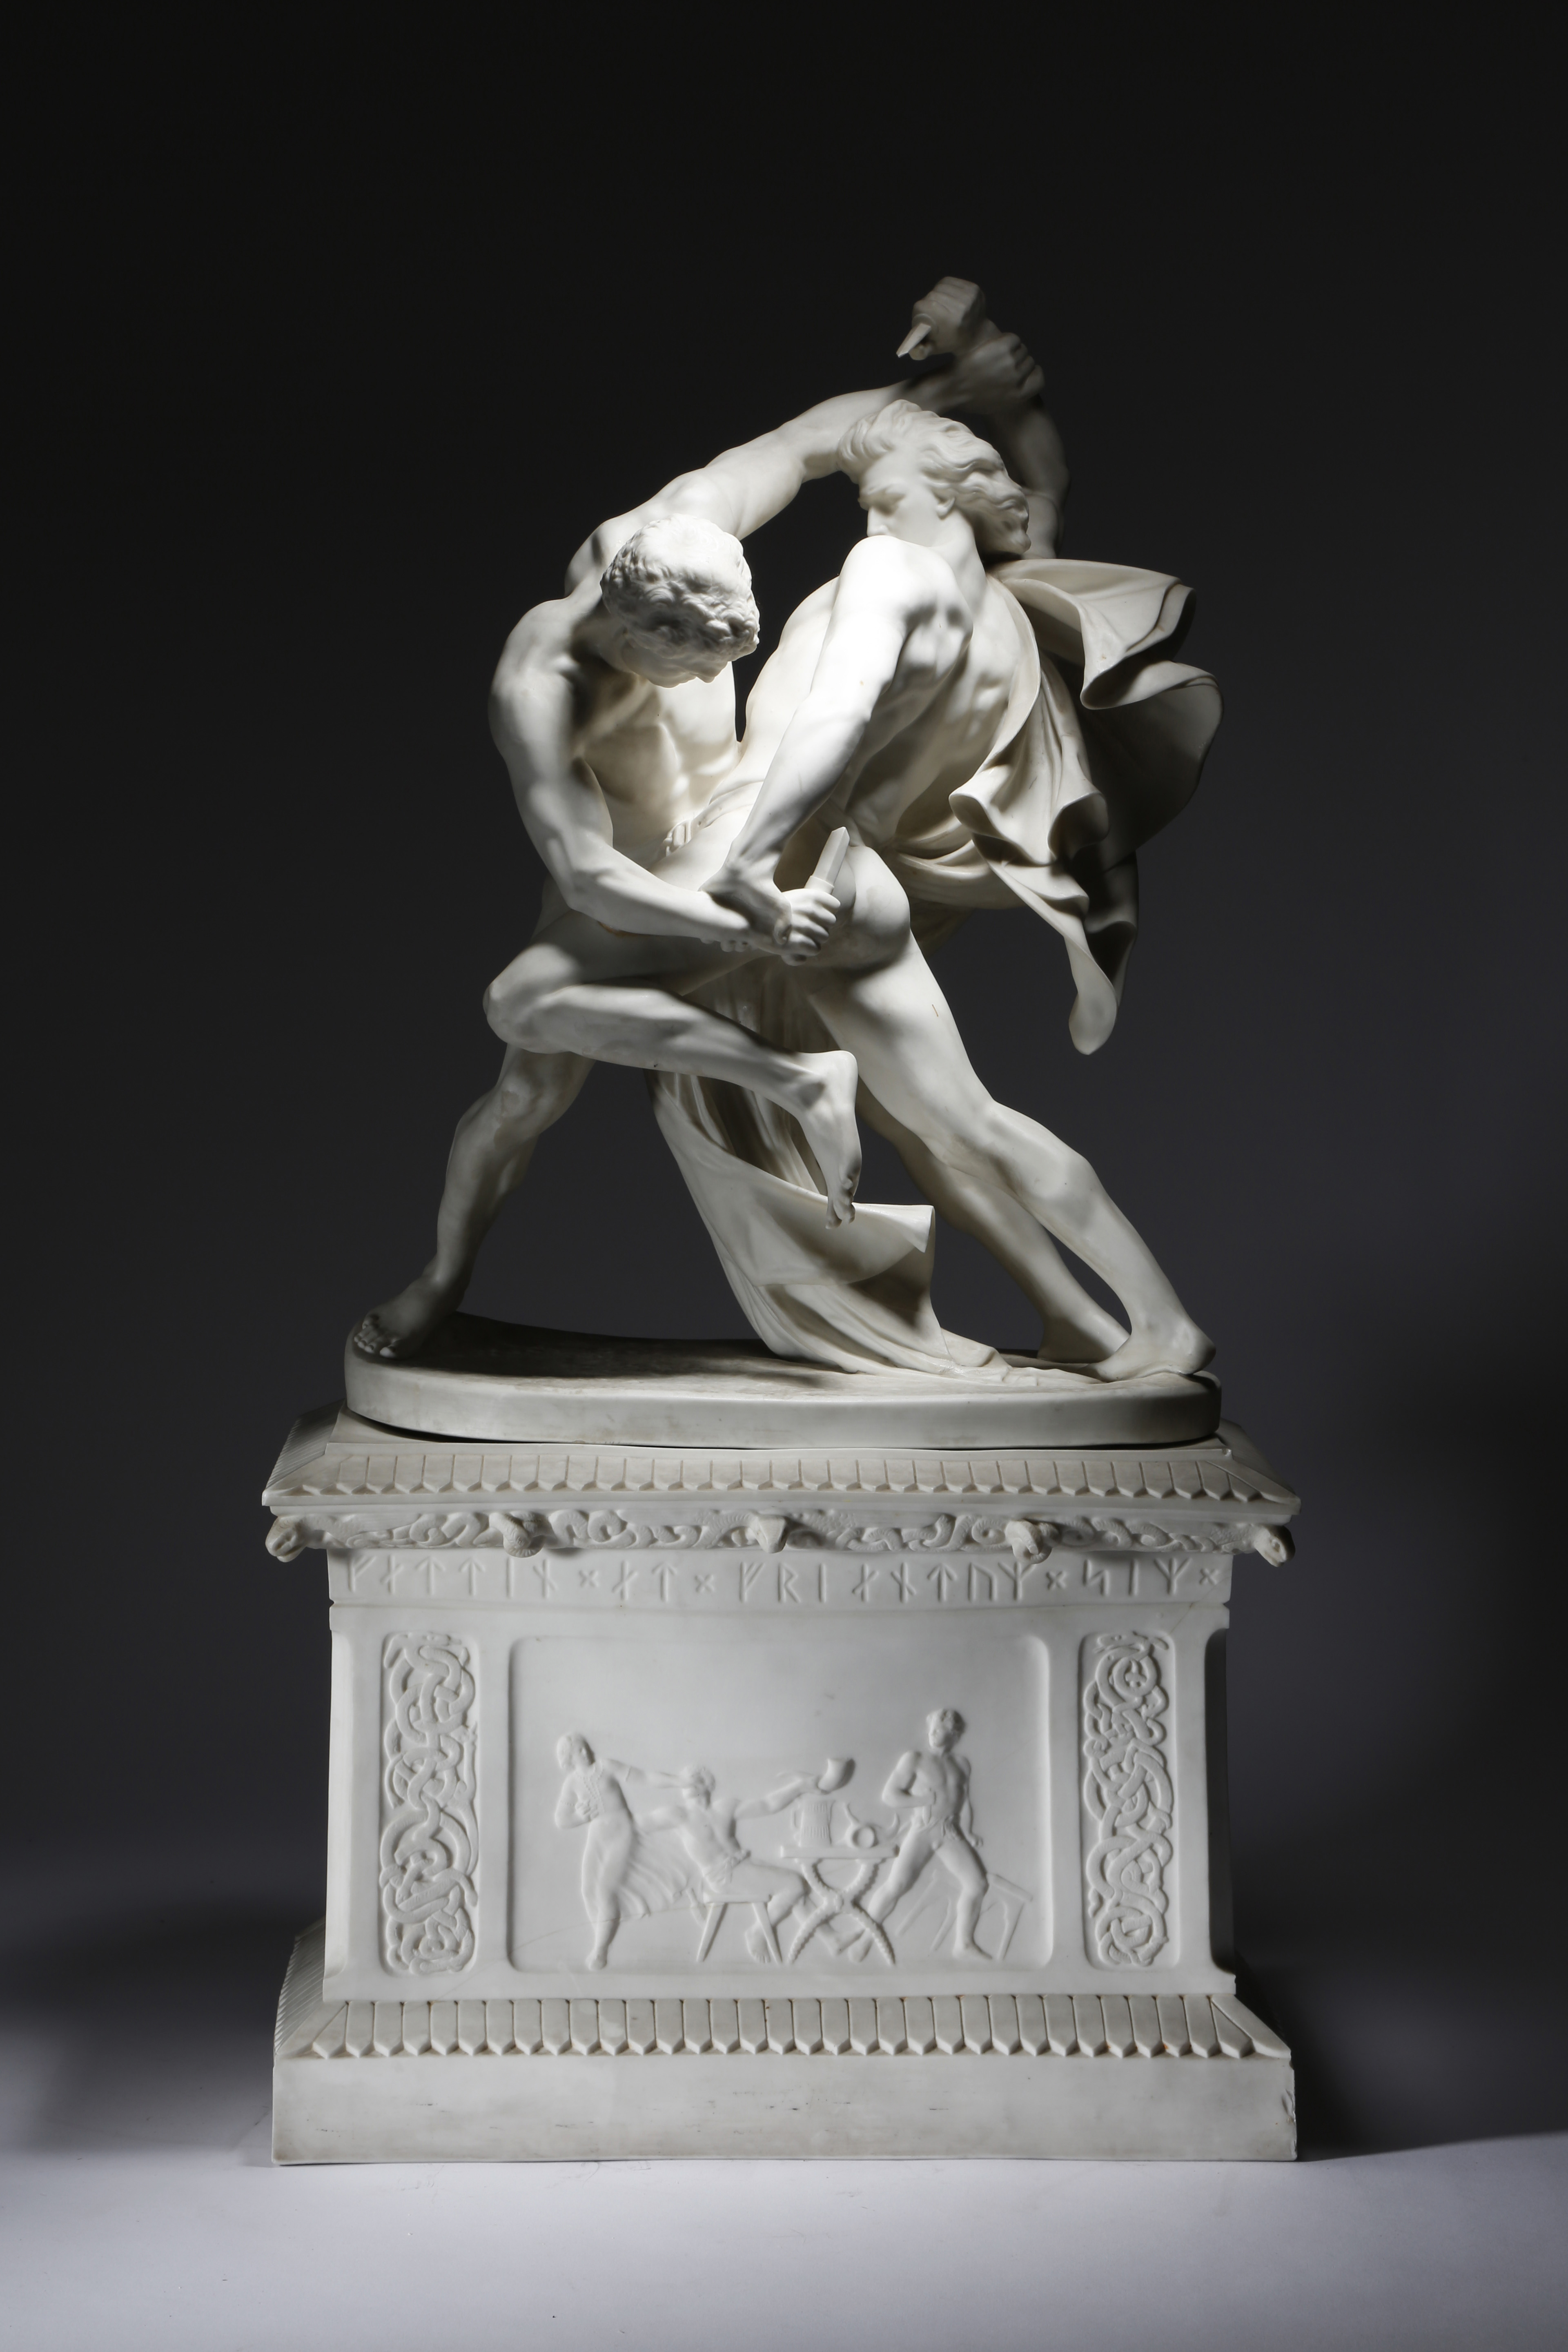 Lot 446 - Johan Peter Molin (Swedish 1814-1873). A biscuit porcelain group of the 'Knife wrestlers' or '